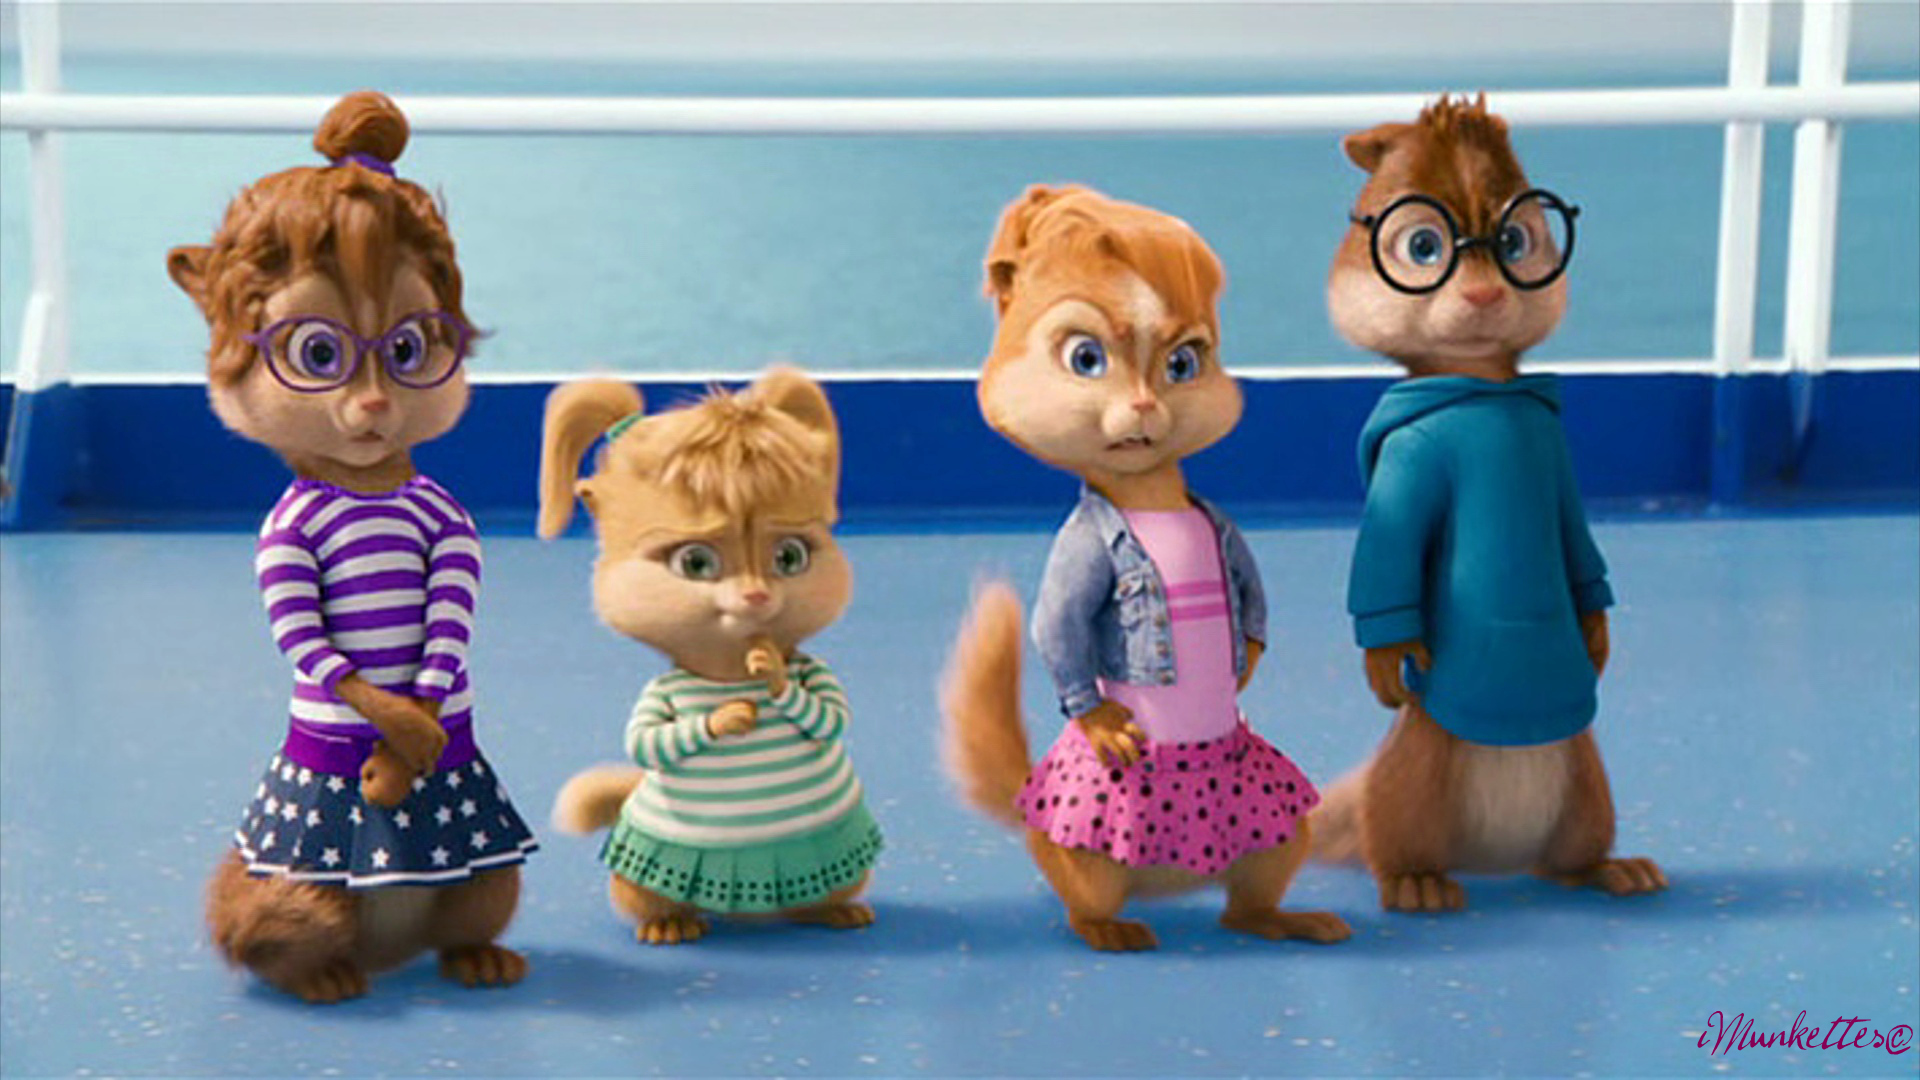 Alvin And The Chipmunks 3 Images oh snap o.o - alvin and the chipmunks 3: chip-wrecked